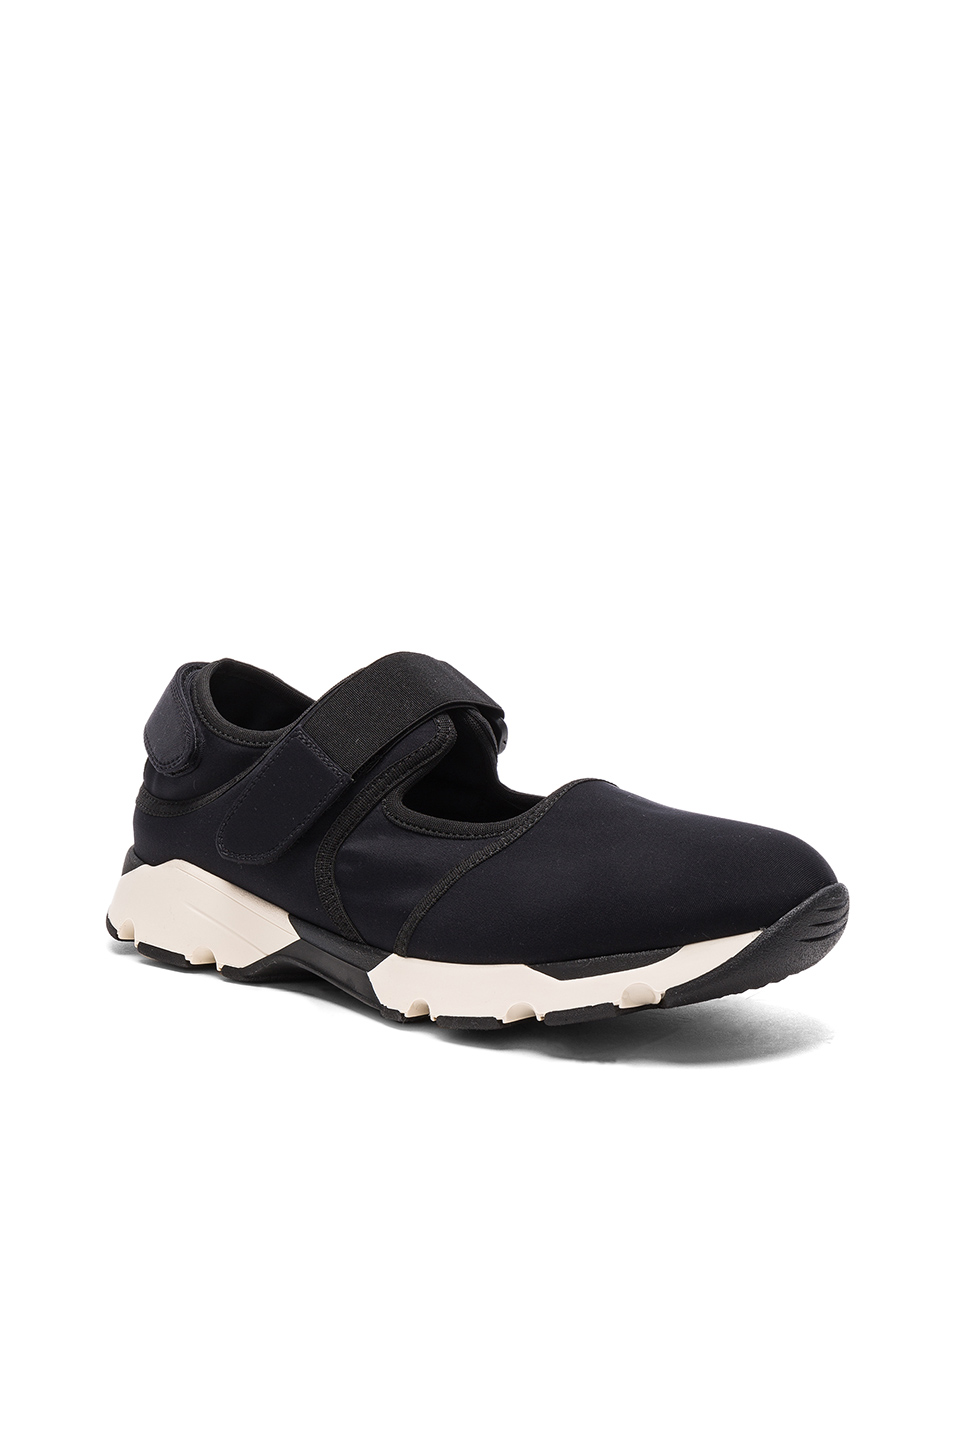 Marni Sneakers in Black